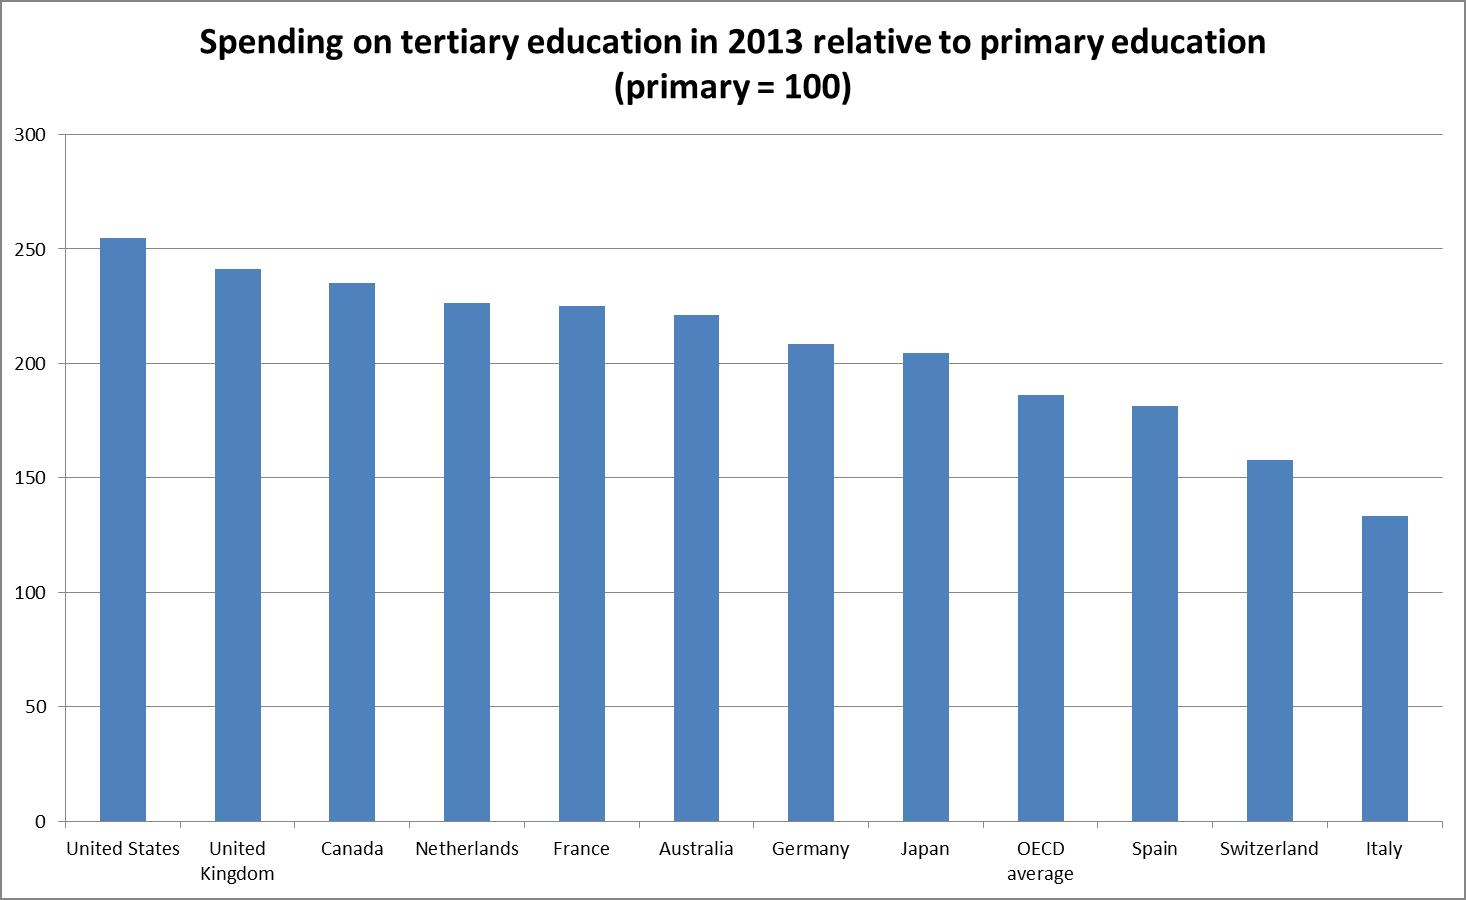 Tertiary education spending per student compared with primary education in selected countries in 2013